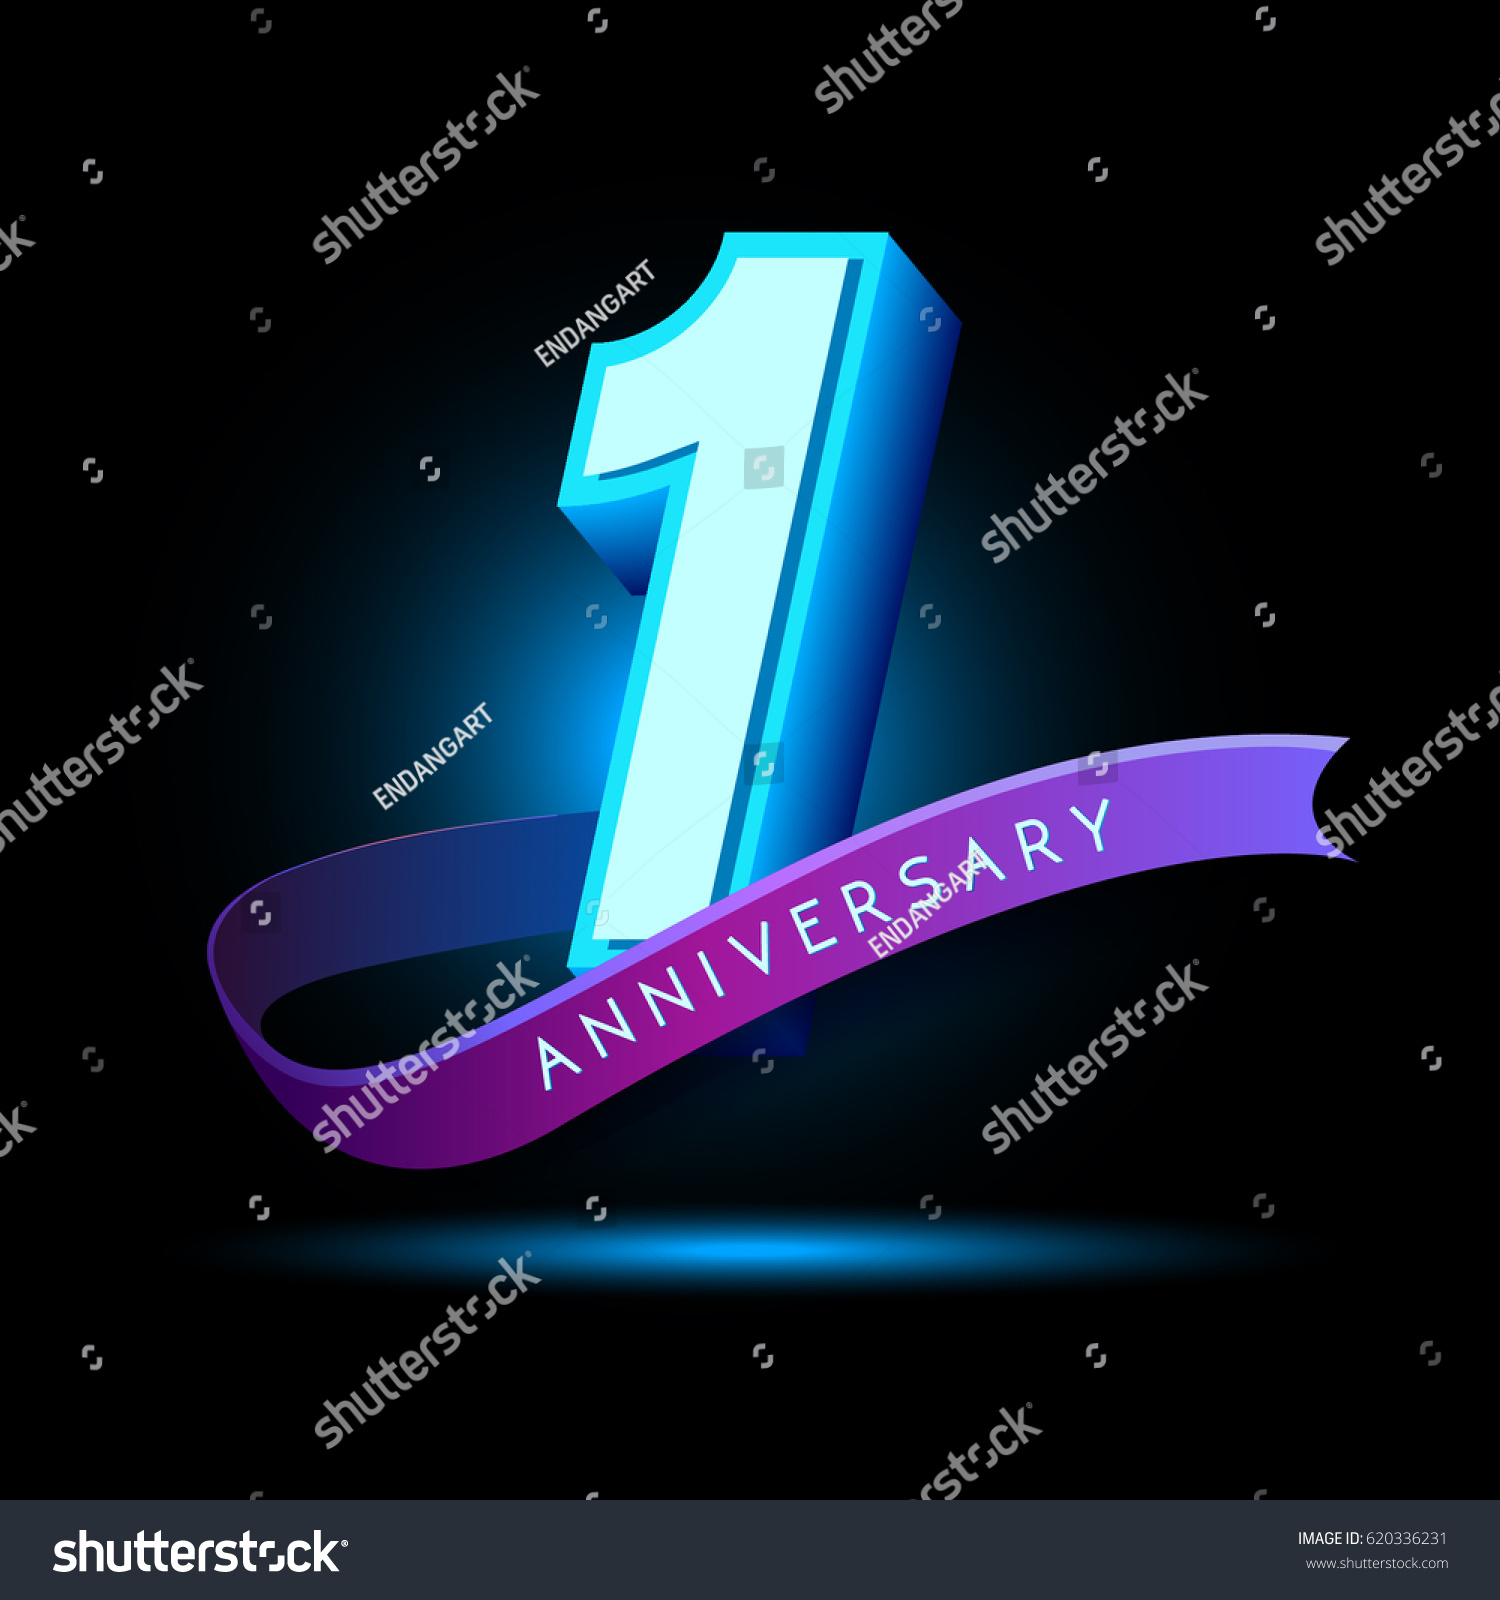 St anniversary d text glow effect stock vector